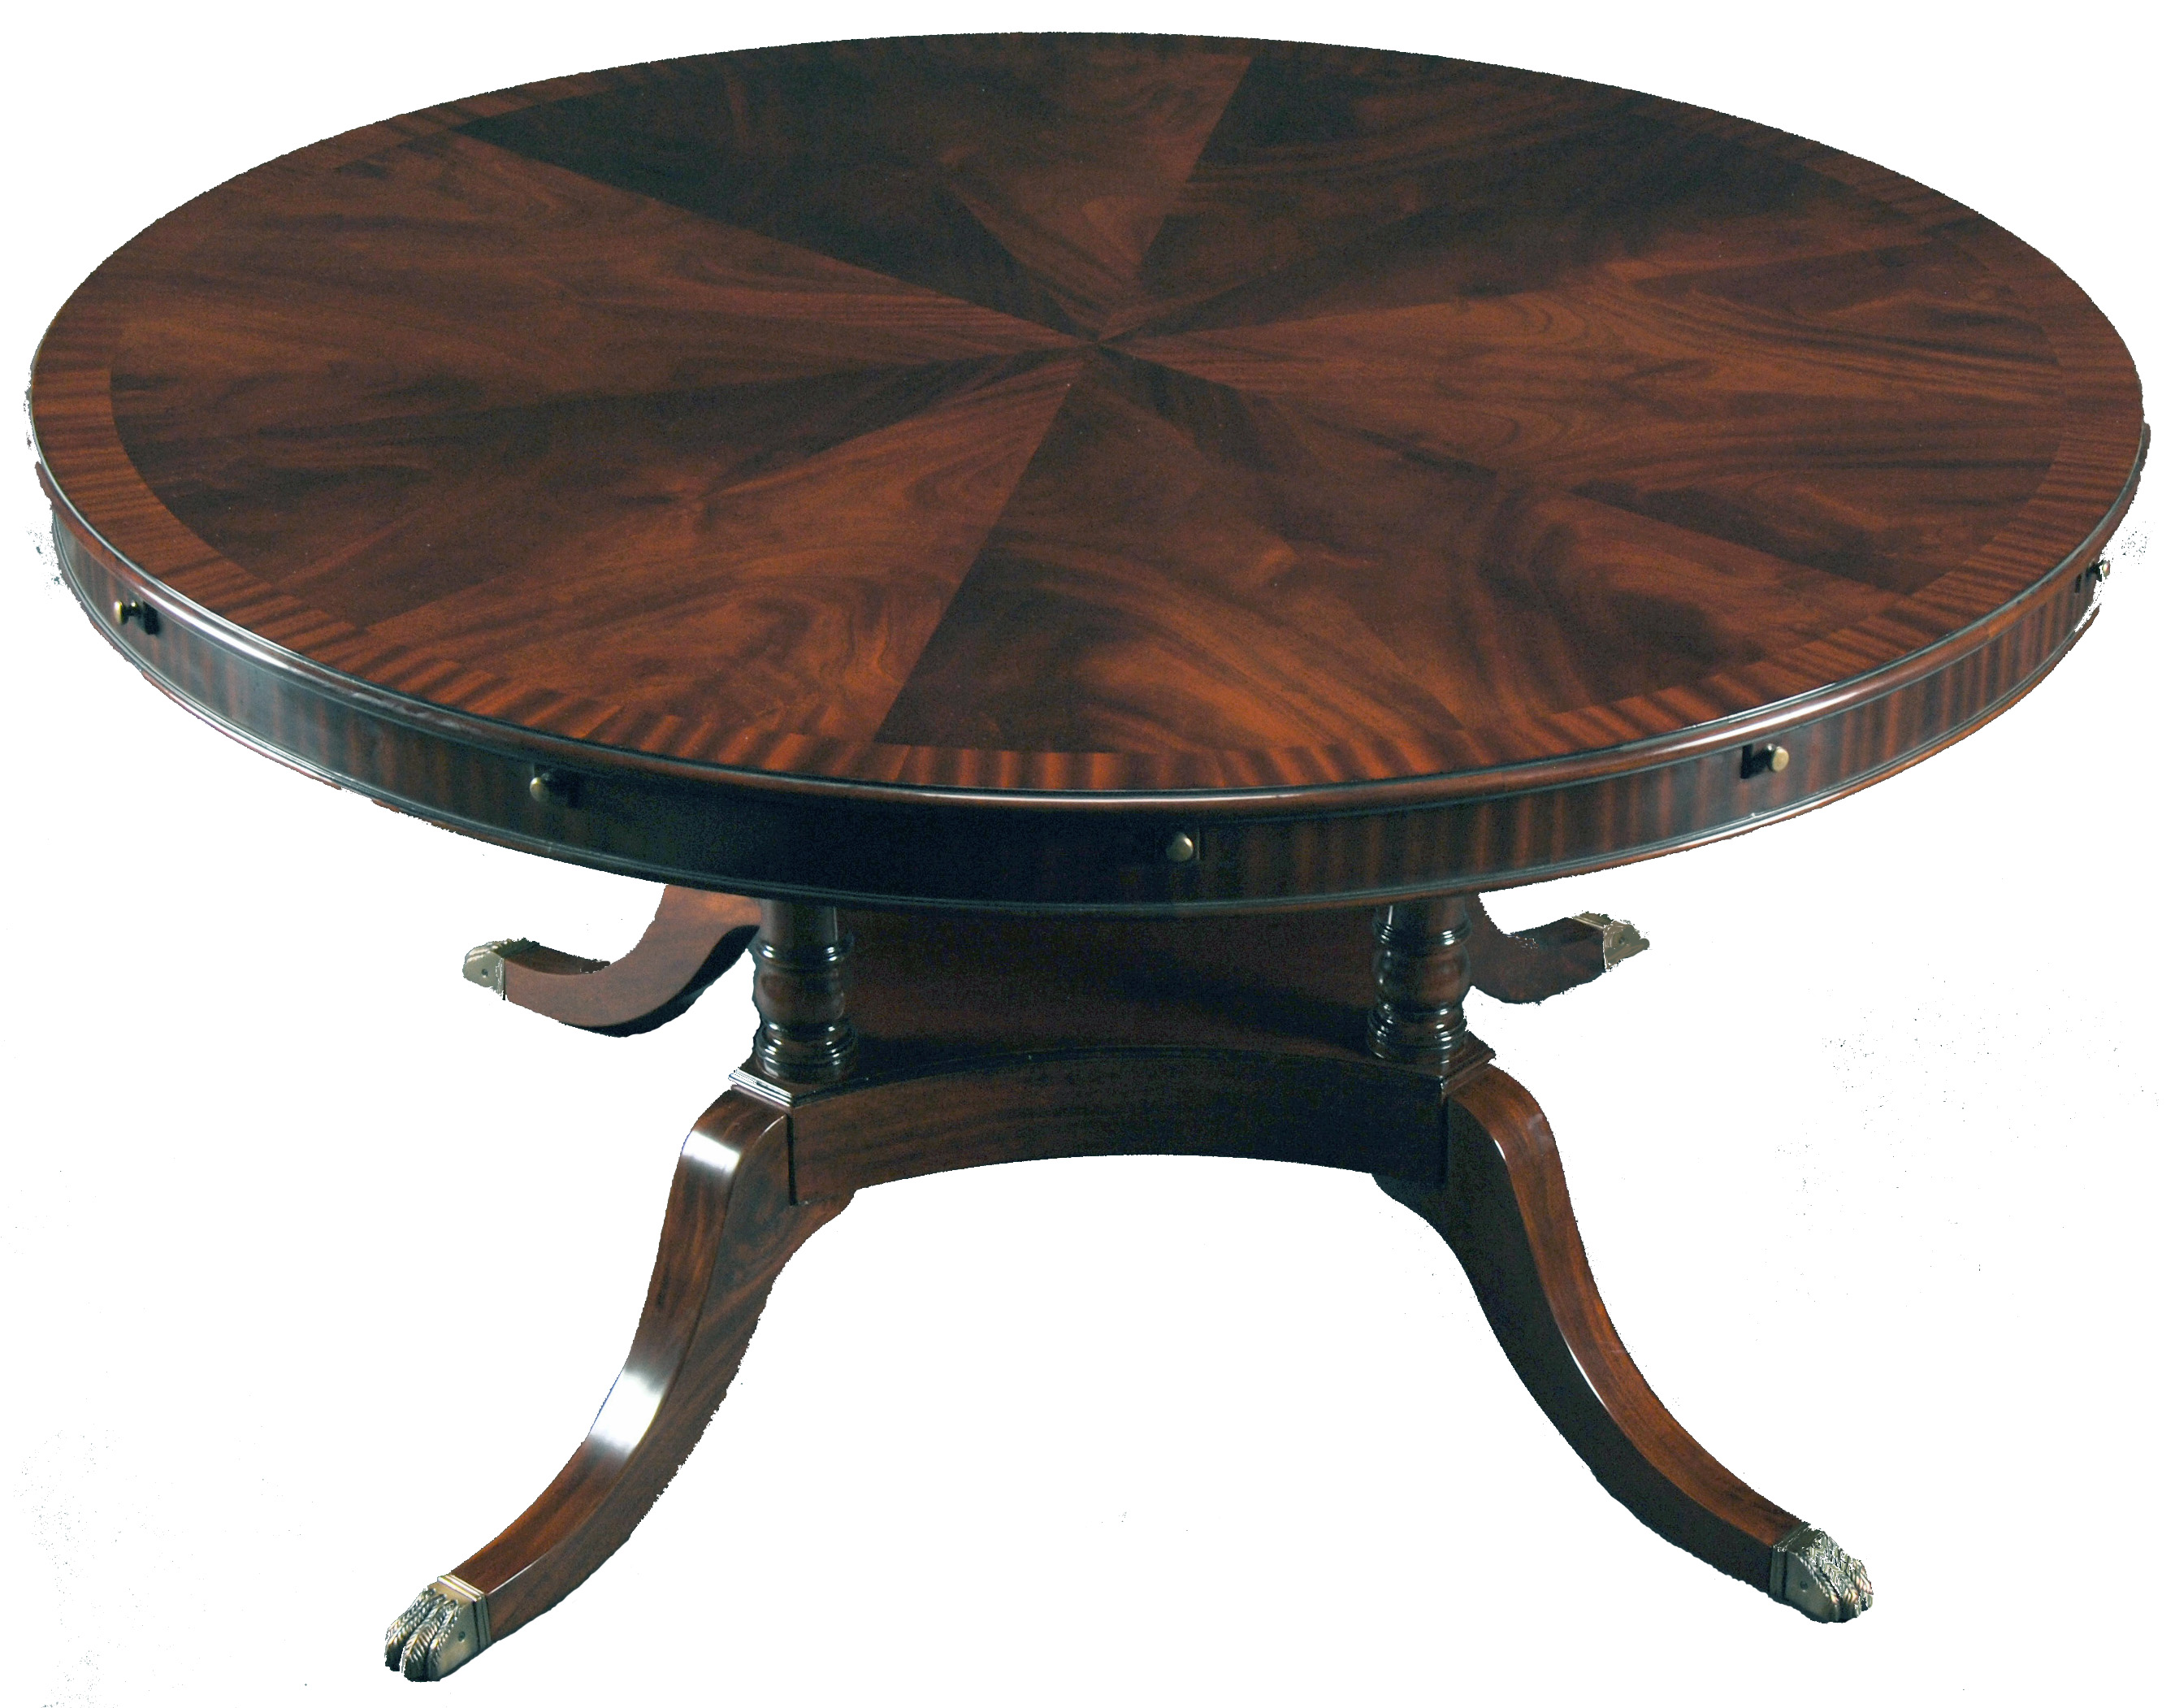 high quality 84 inch diameter round mahogany dining table with perimeter leaves ebay. Black Bedroom Furniture Sets. Home Design Ideas